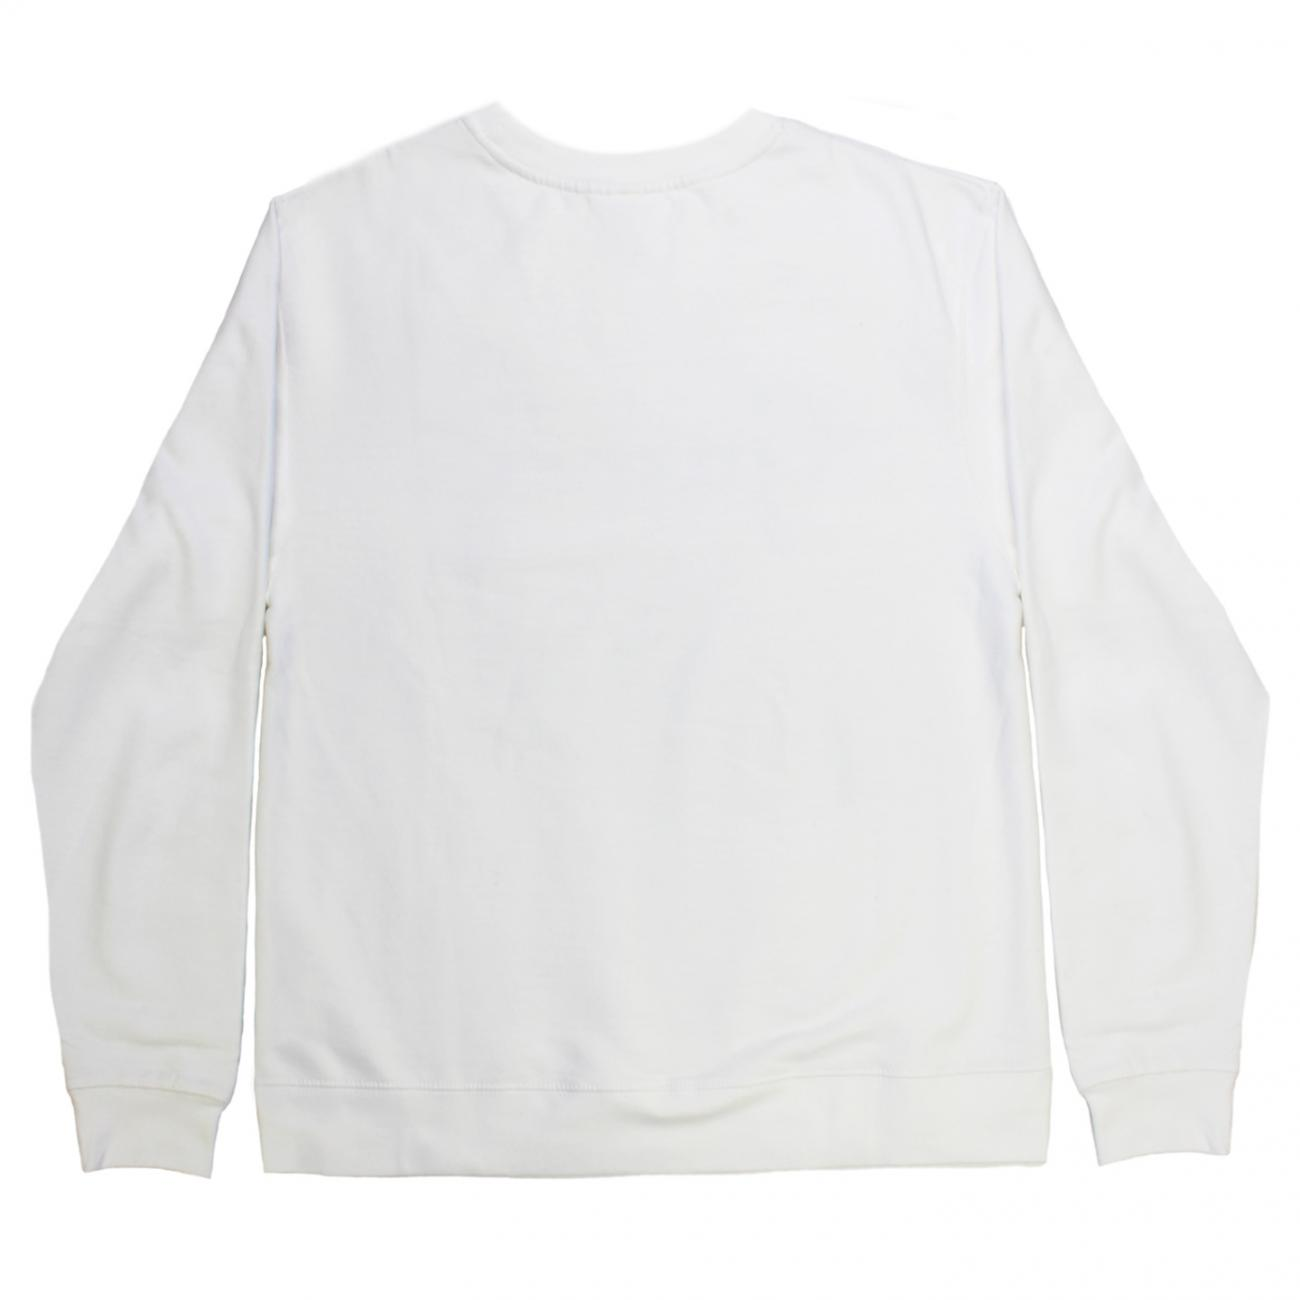 Gurney's Screened across chest back white